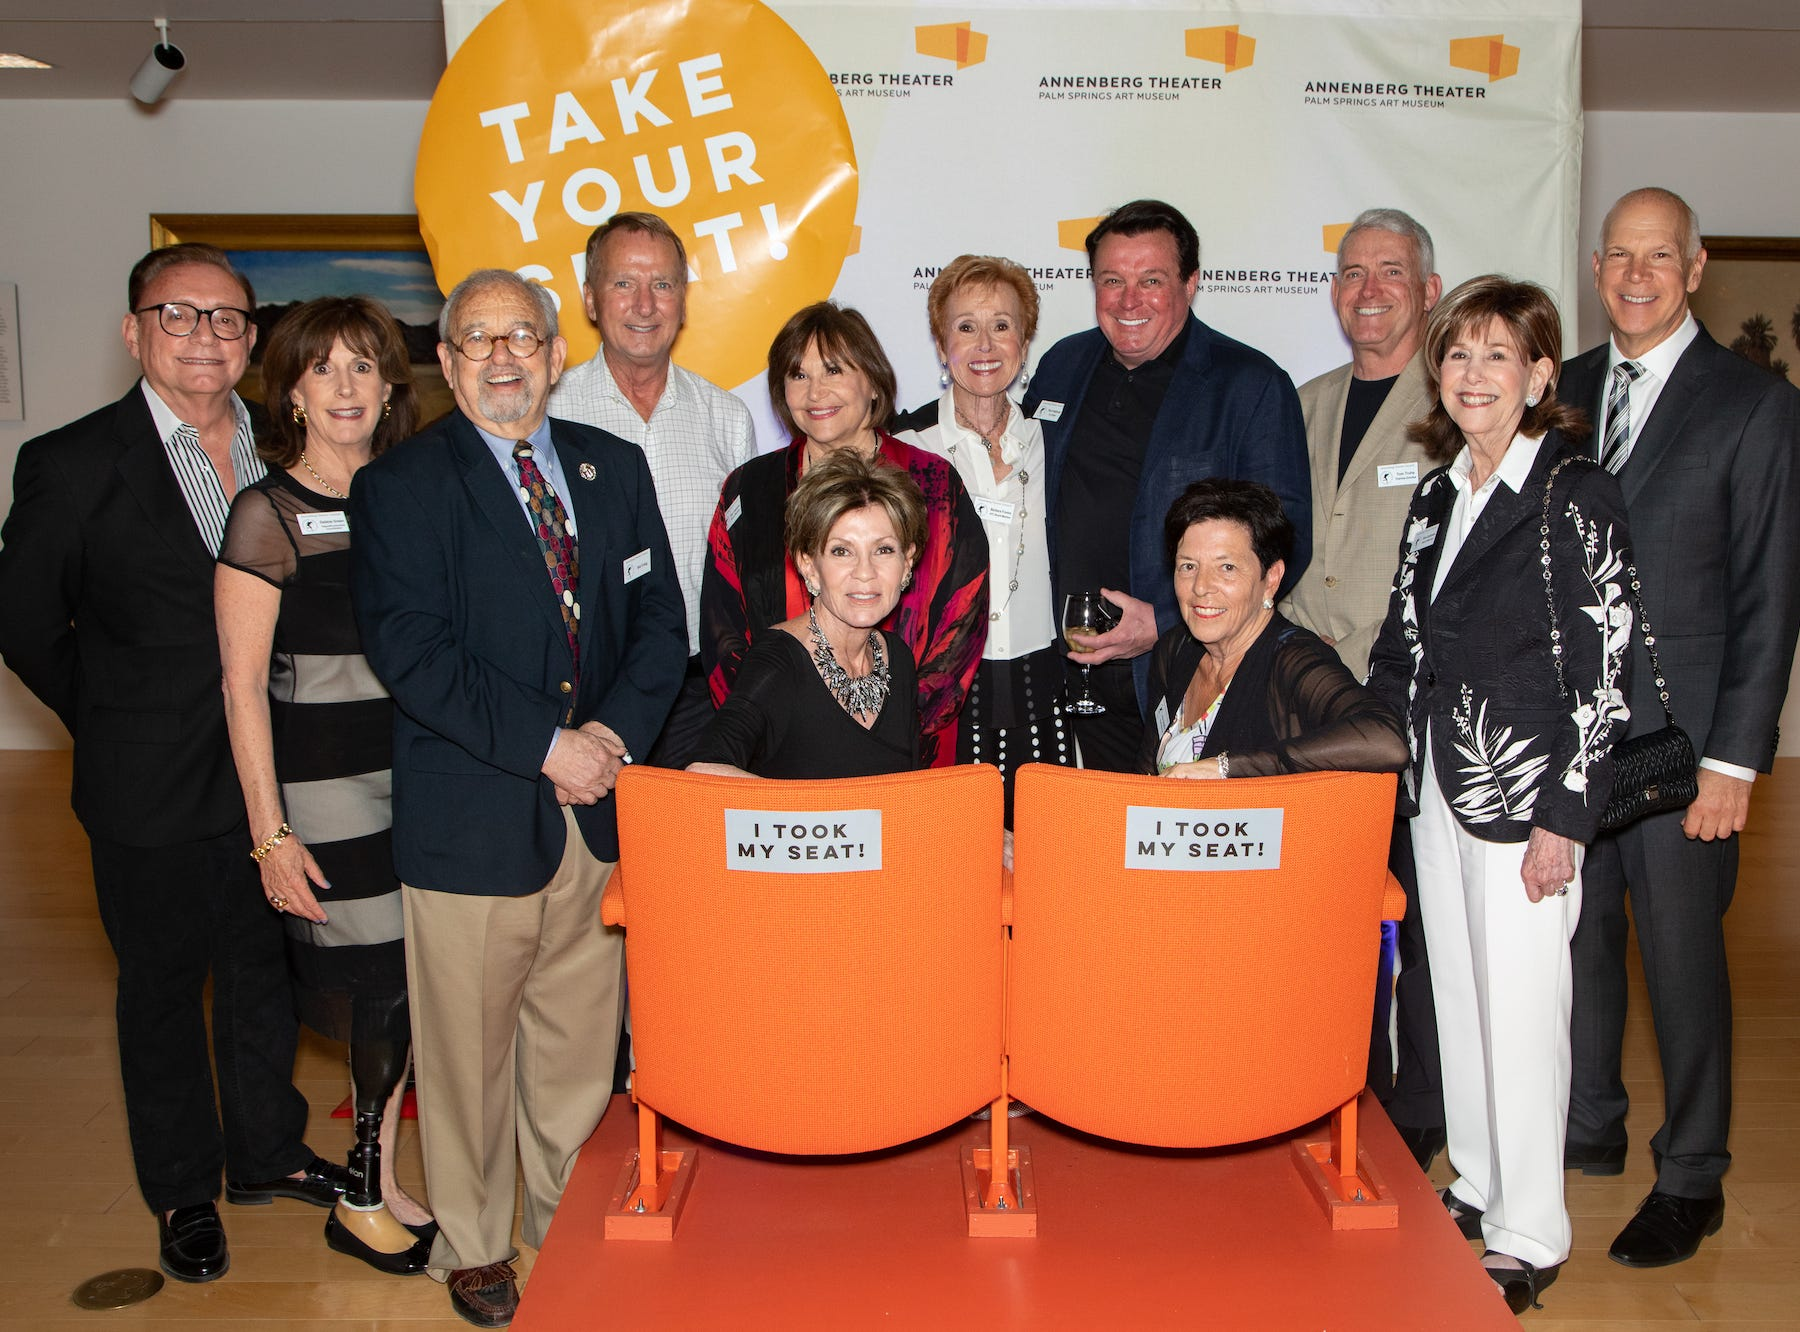 Annenberg council board: Standing, from left: Bill Lanese, Debbie Miller, Sid Craig, Gary Hall, Sue Cameron, Barbara Fromm, Garry Kief, Tom Truhe, Diane Gershowitz and David Zippel. Seated, from left: Terri Ketover and Ann Sheffer.